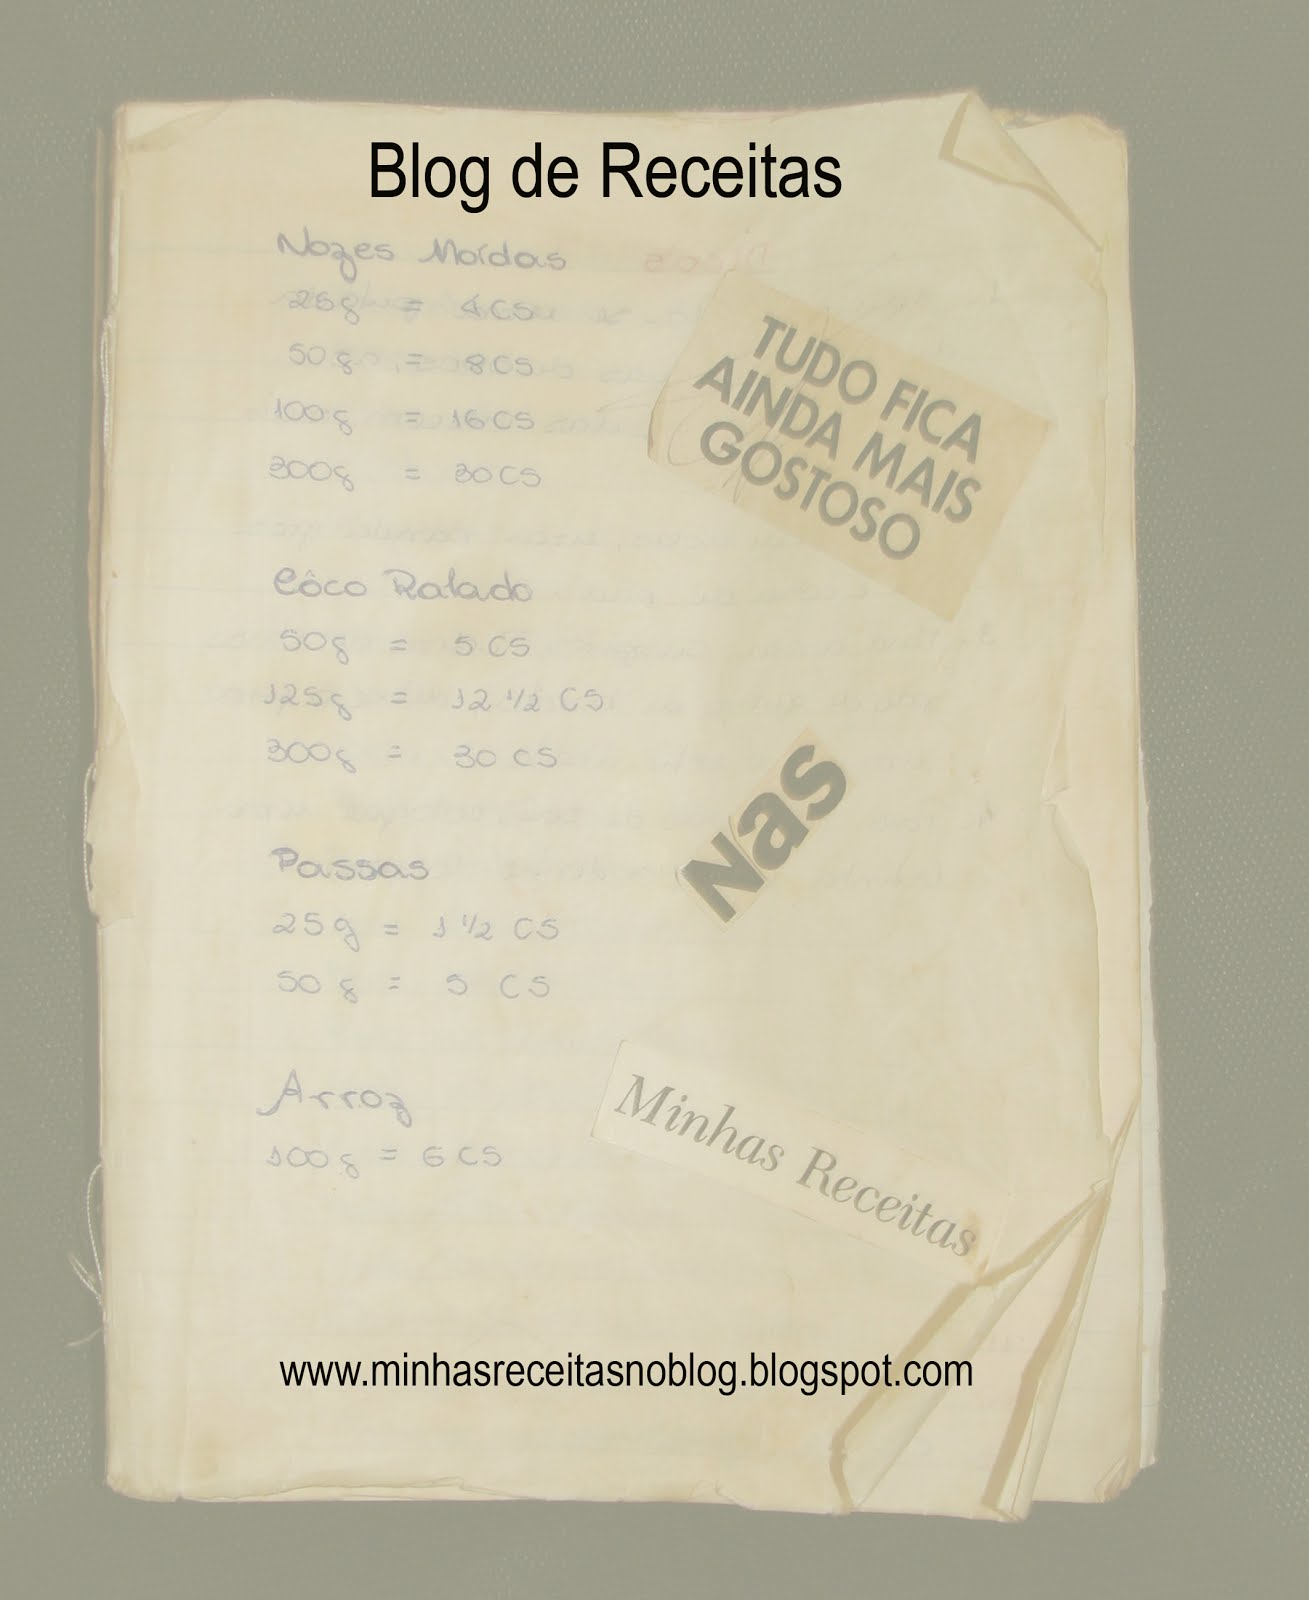 O porque do Blog